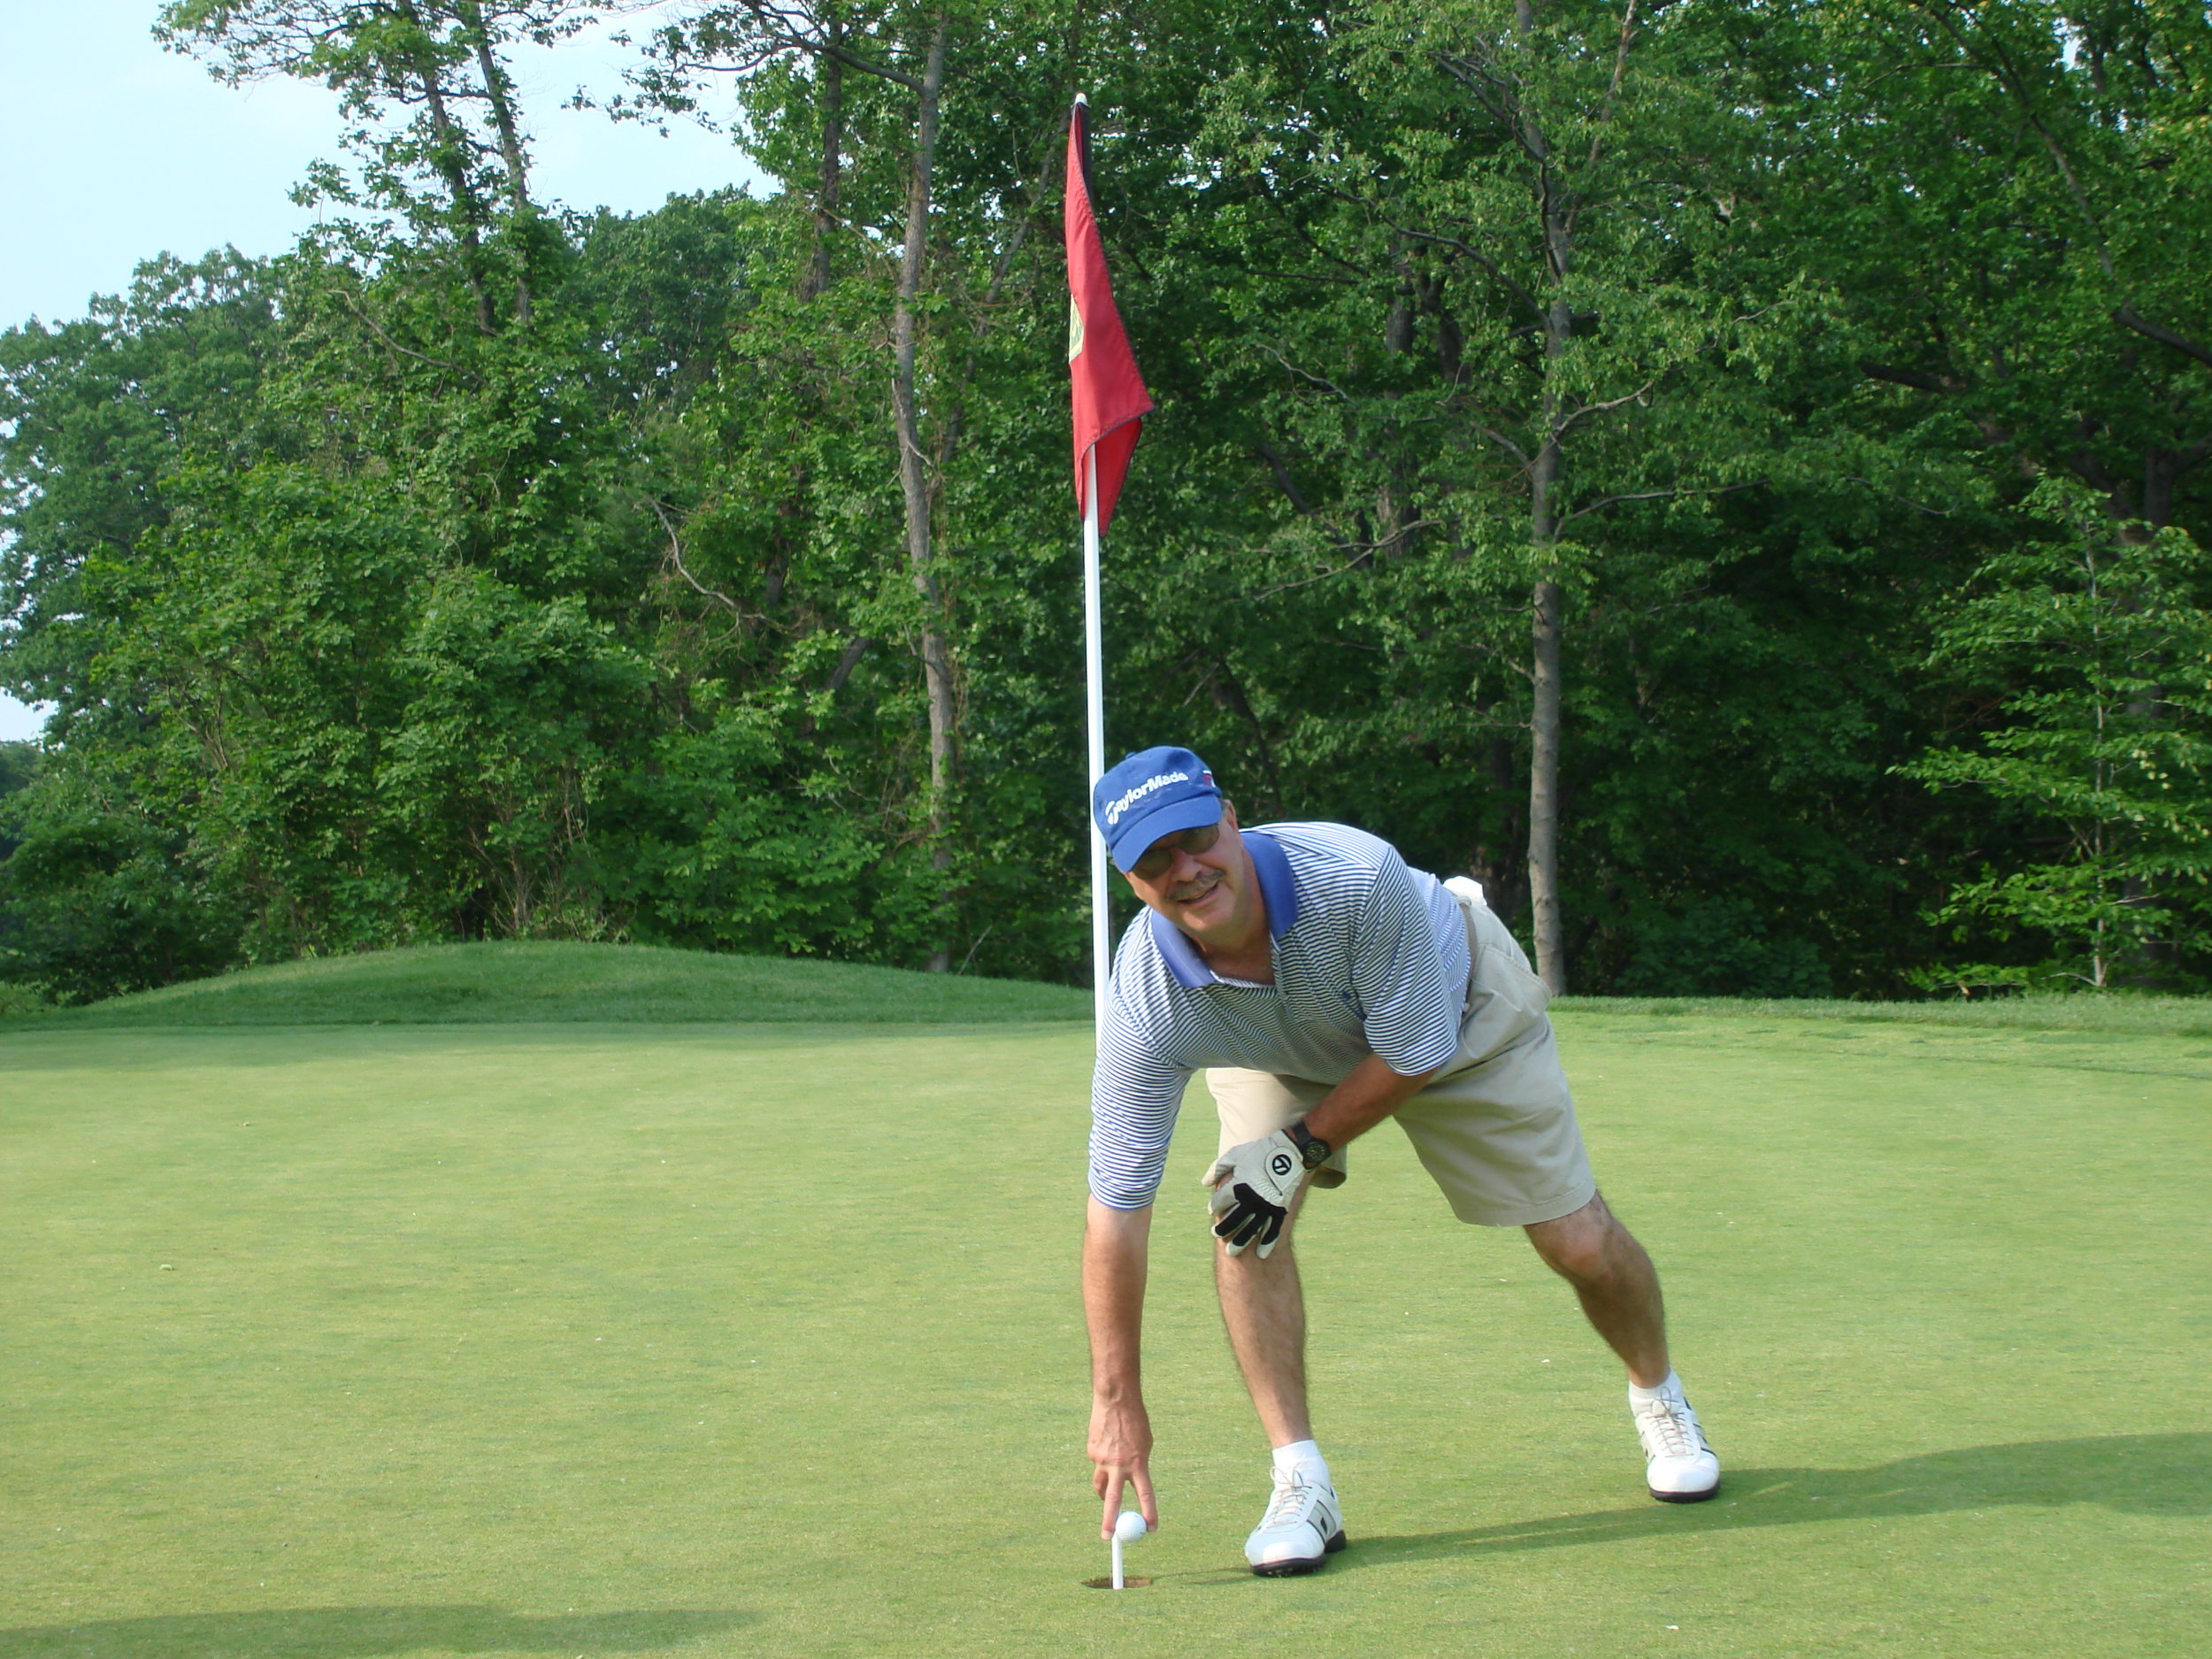 My dear friend Fred Cuccia, a former President who did more to restore BBCC than anyone, deservedly retrieve's the ball from a hole in one on 15. 2010.